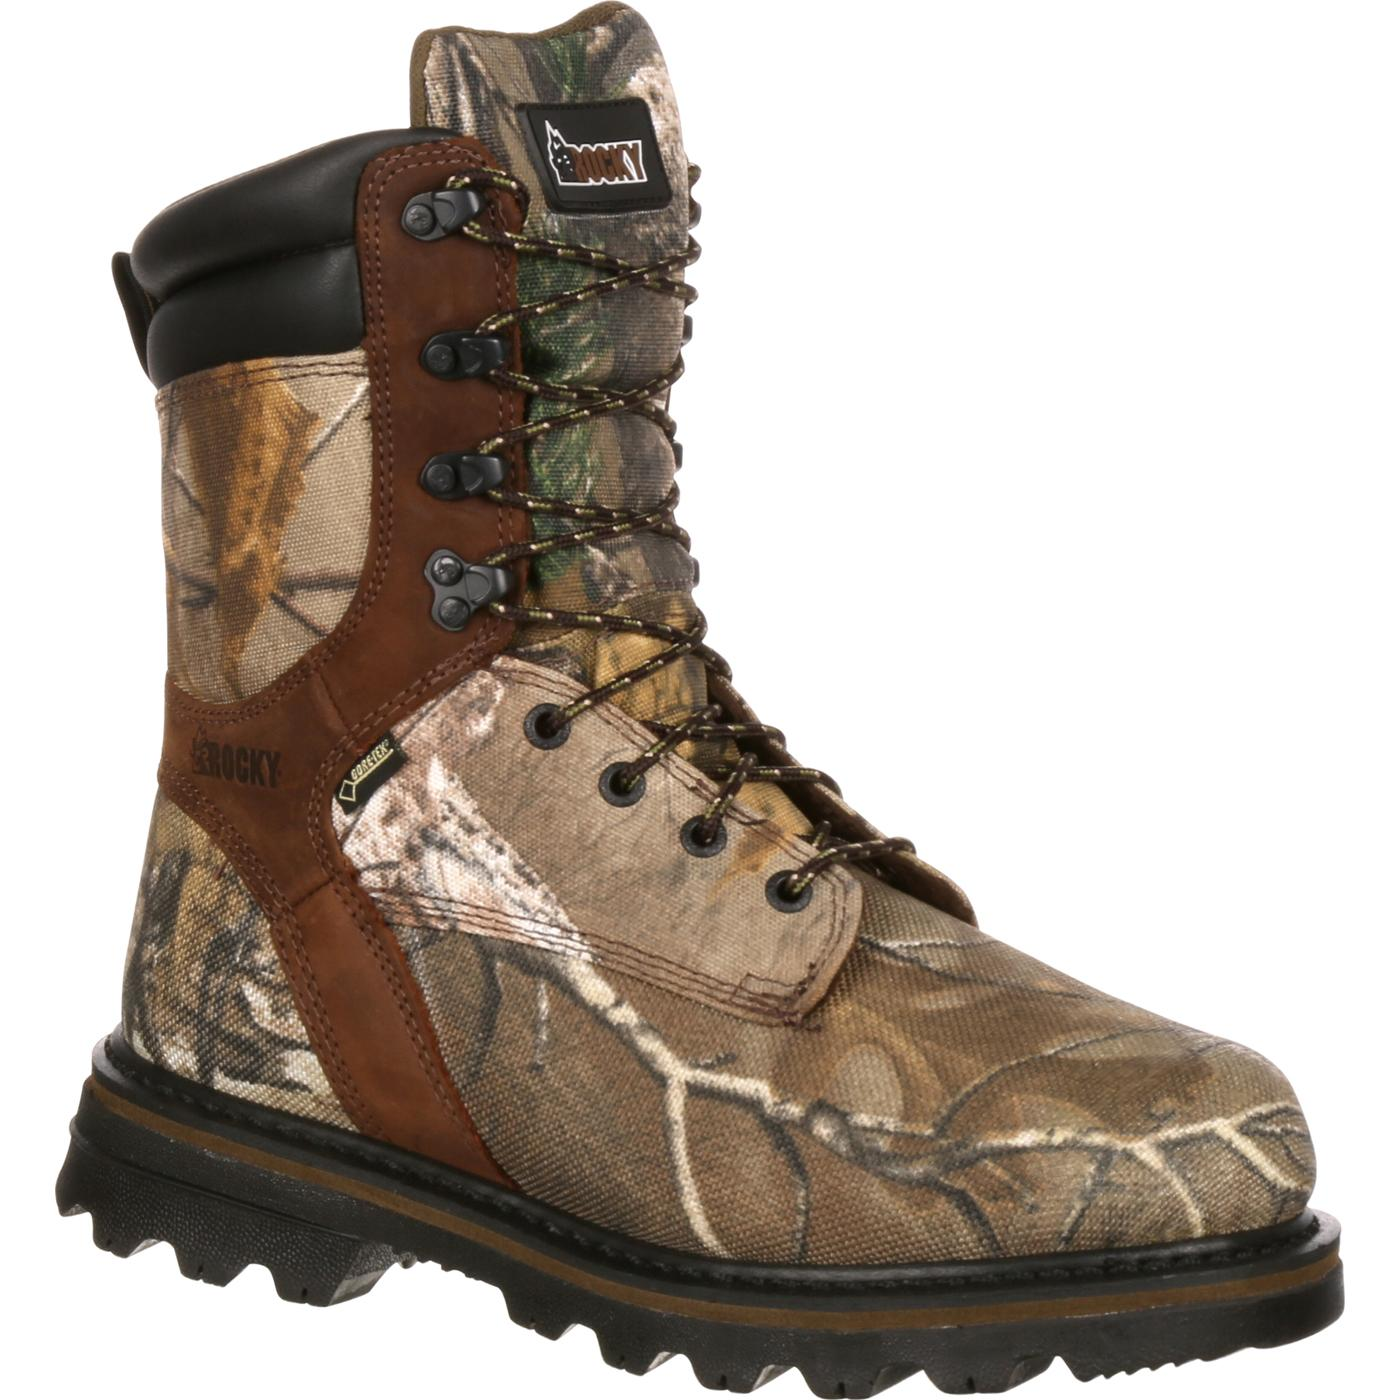 Rocky CornStalker GORE-TEX® Waterproof 600G Insulated Hunting Boot, , large